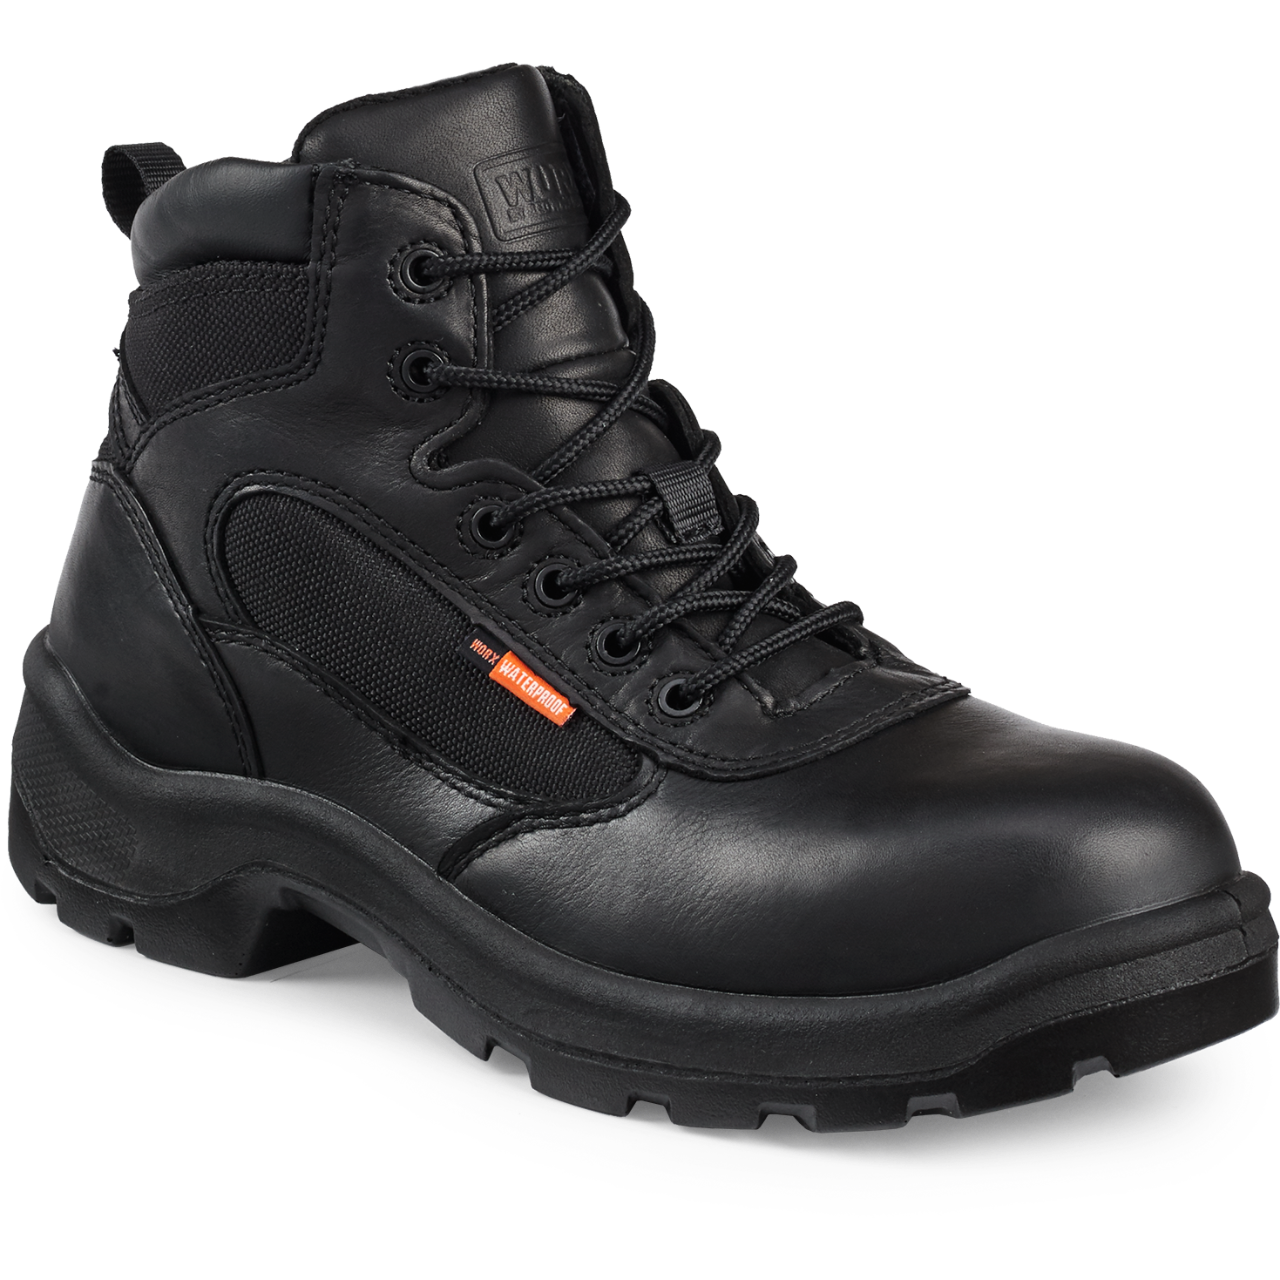 Worx 5611  Composite Toe - Waterproof - Electrical Hazard  Click here for specifications